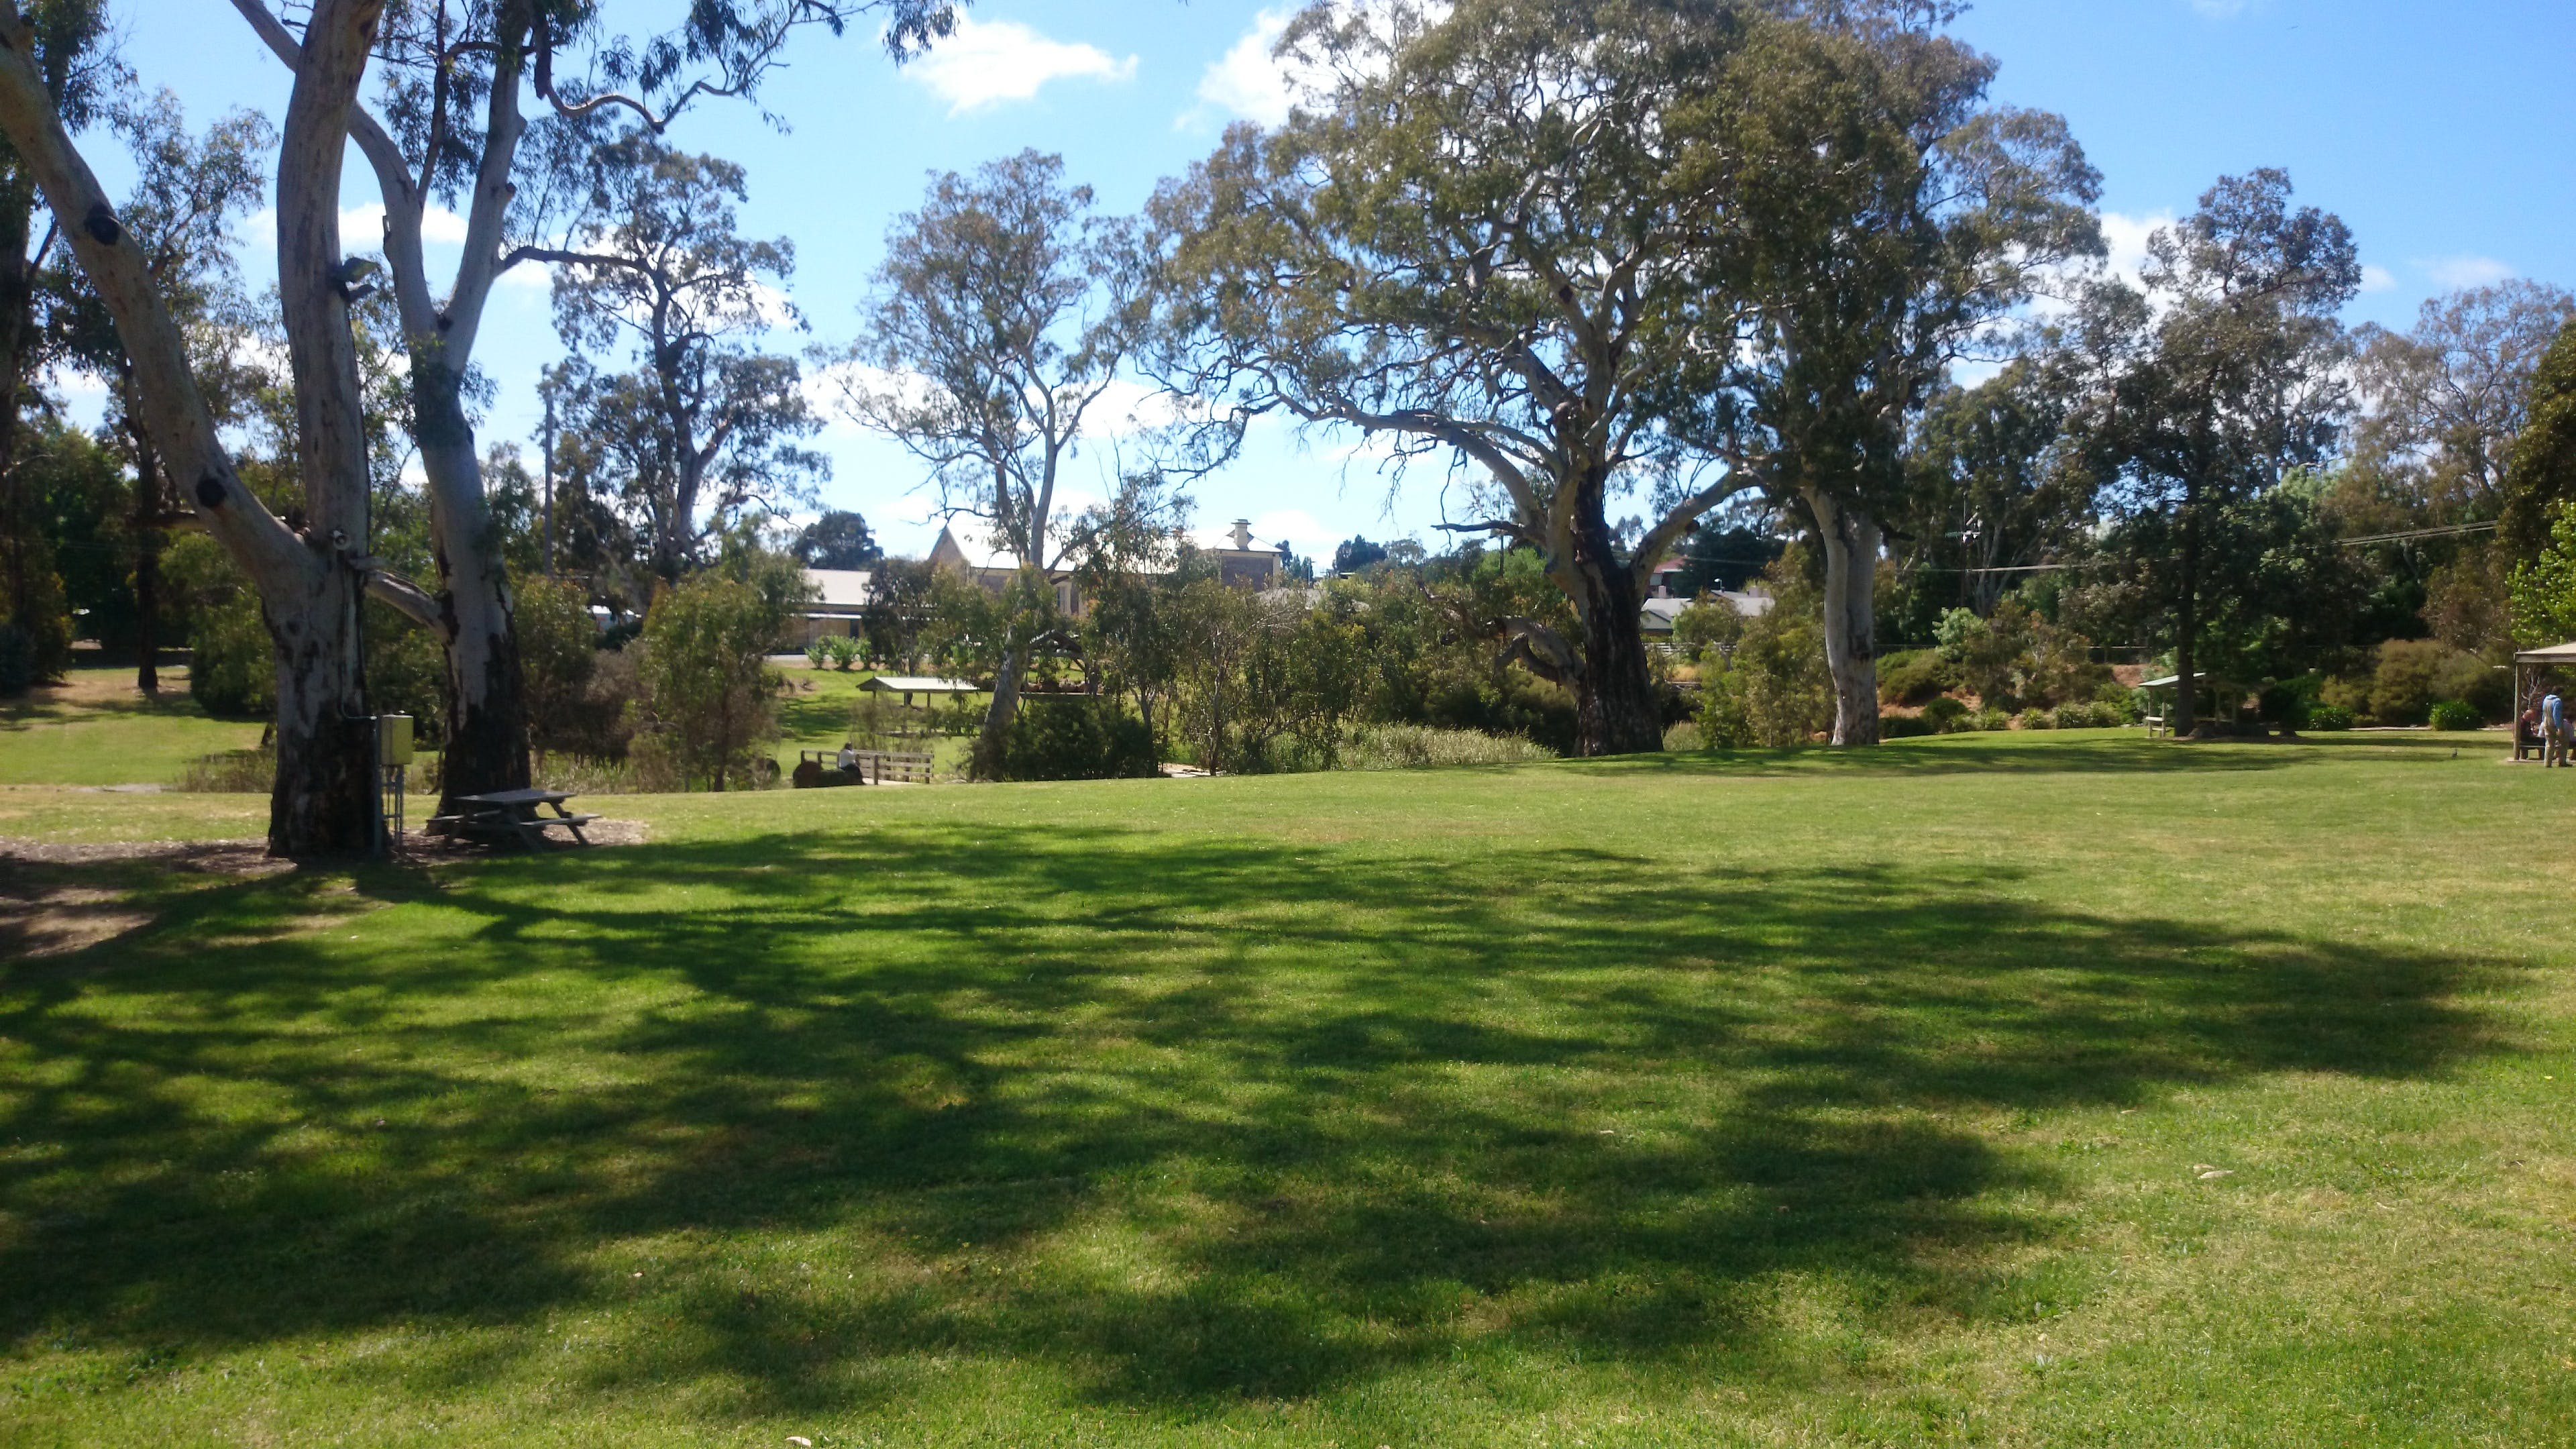 Parks and ovals   federation park   trees